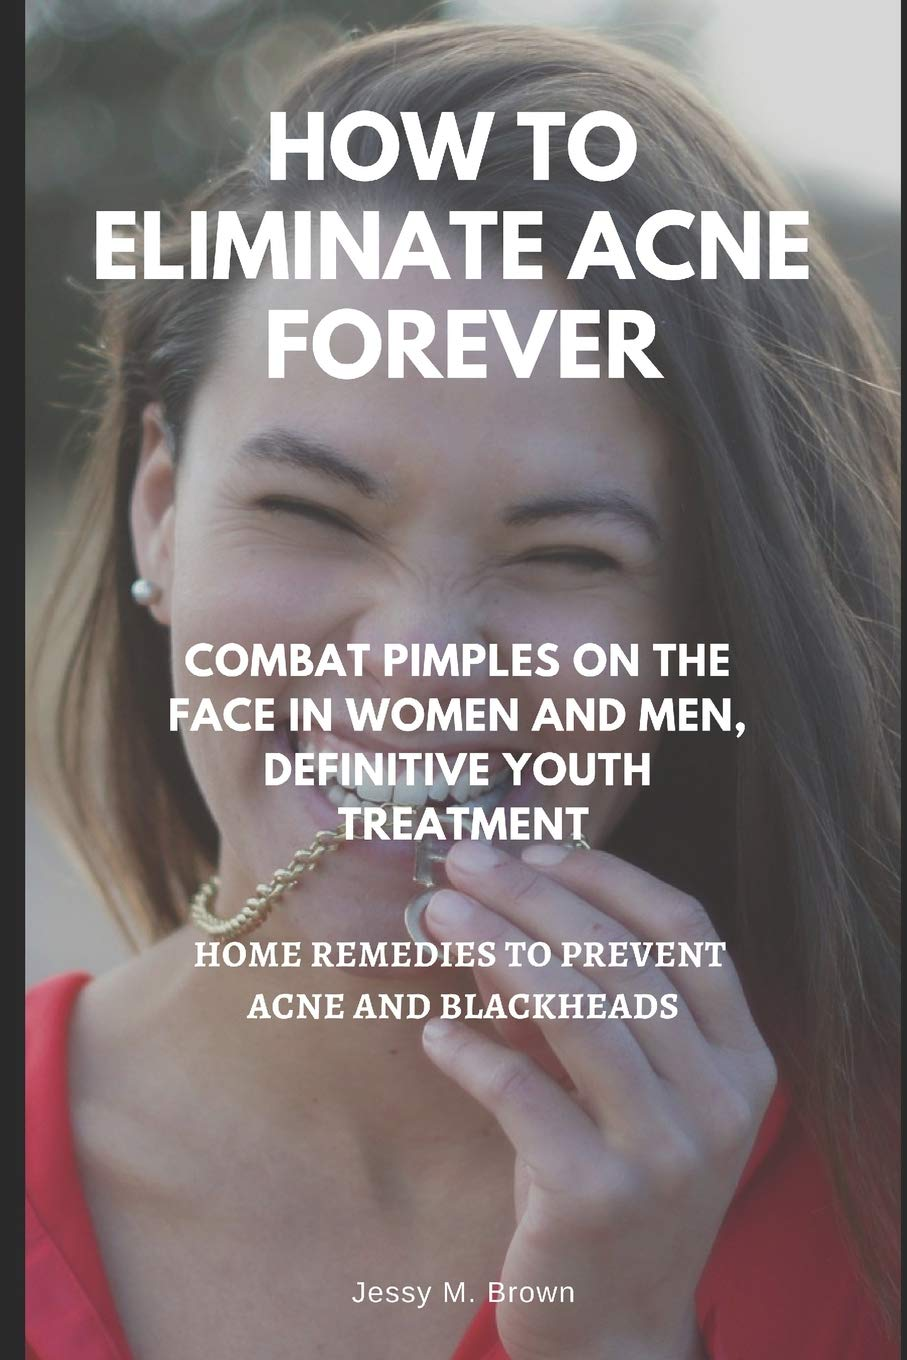 HOW ELIMINATE ACNE FOREVER DEFINITIVE